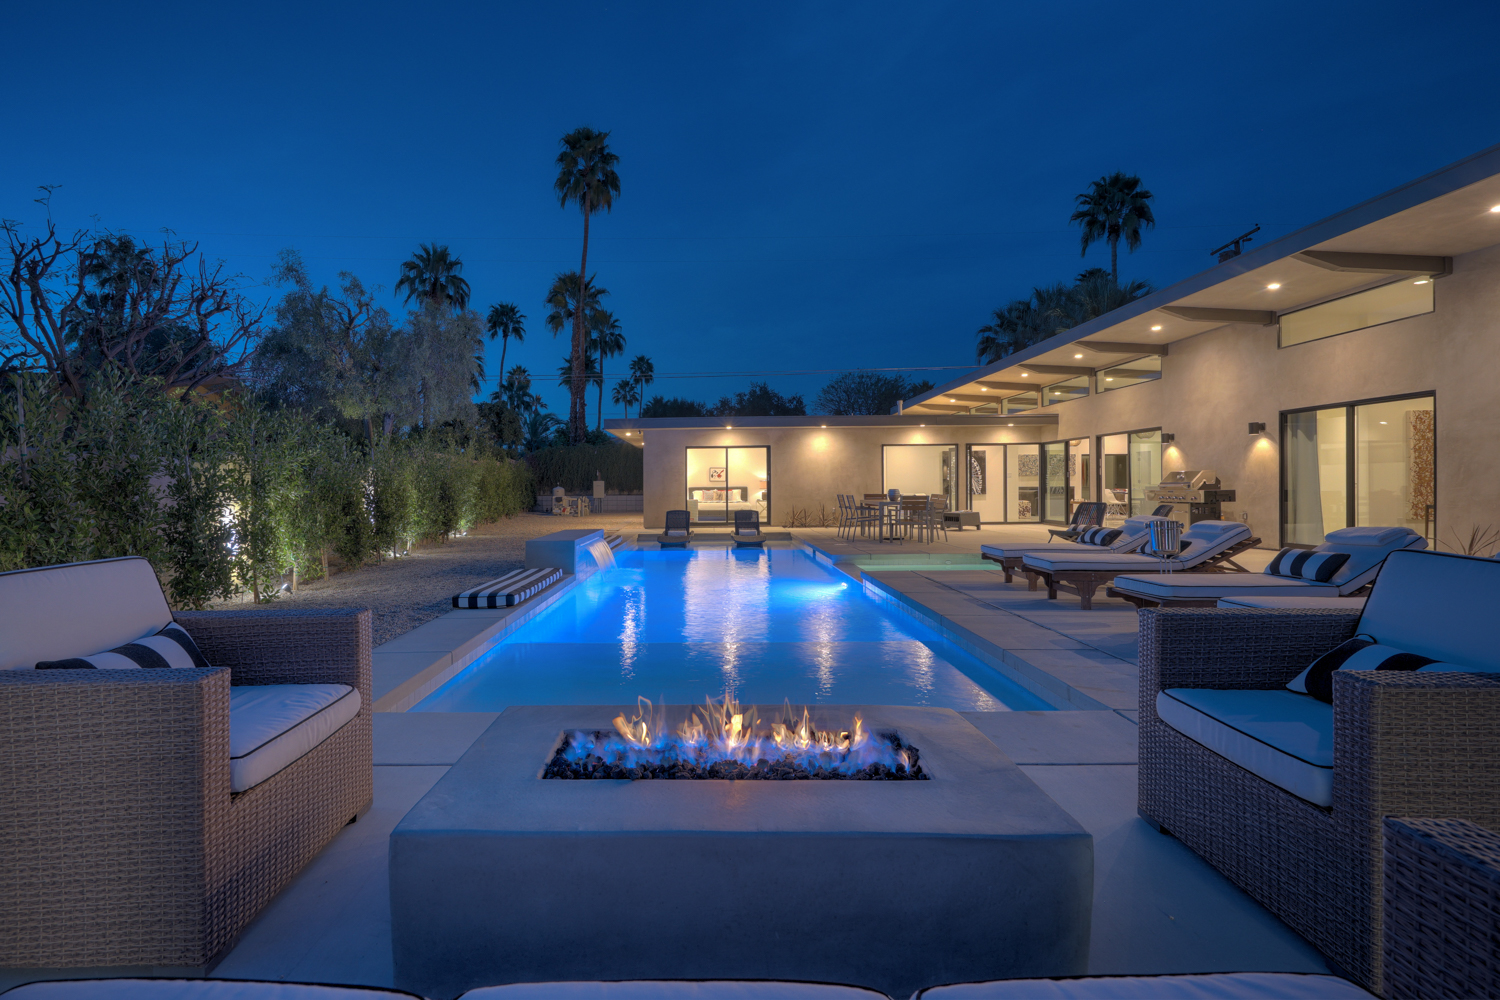 Palms-at-Park-Palm-Springs-Vacation-Rental-Home-23.jpg